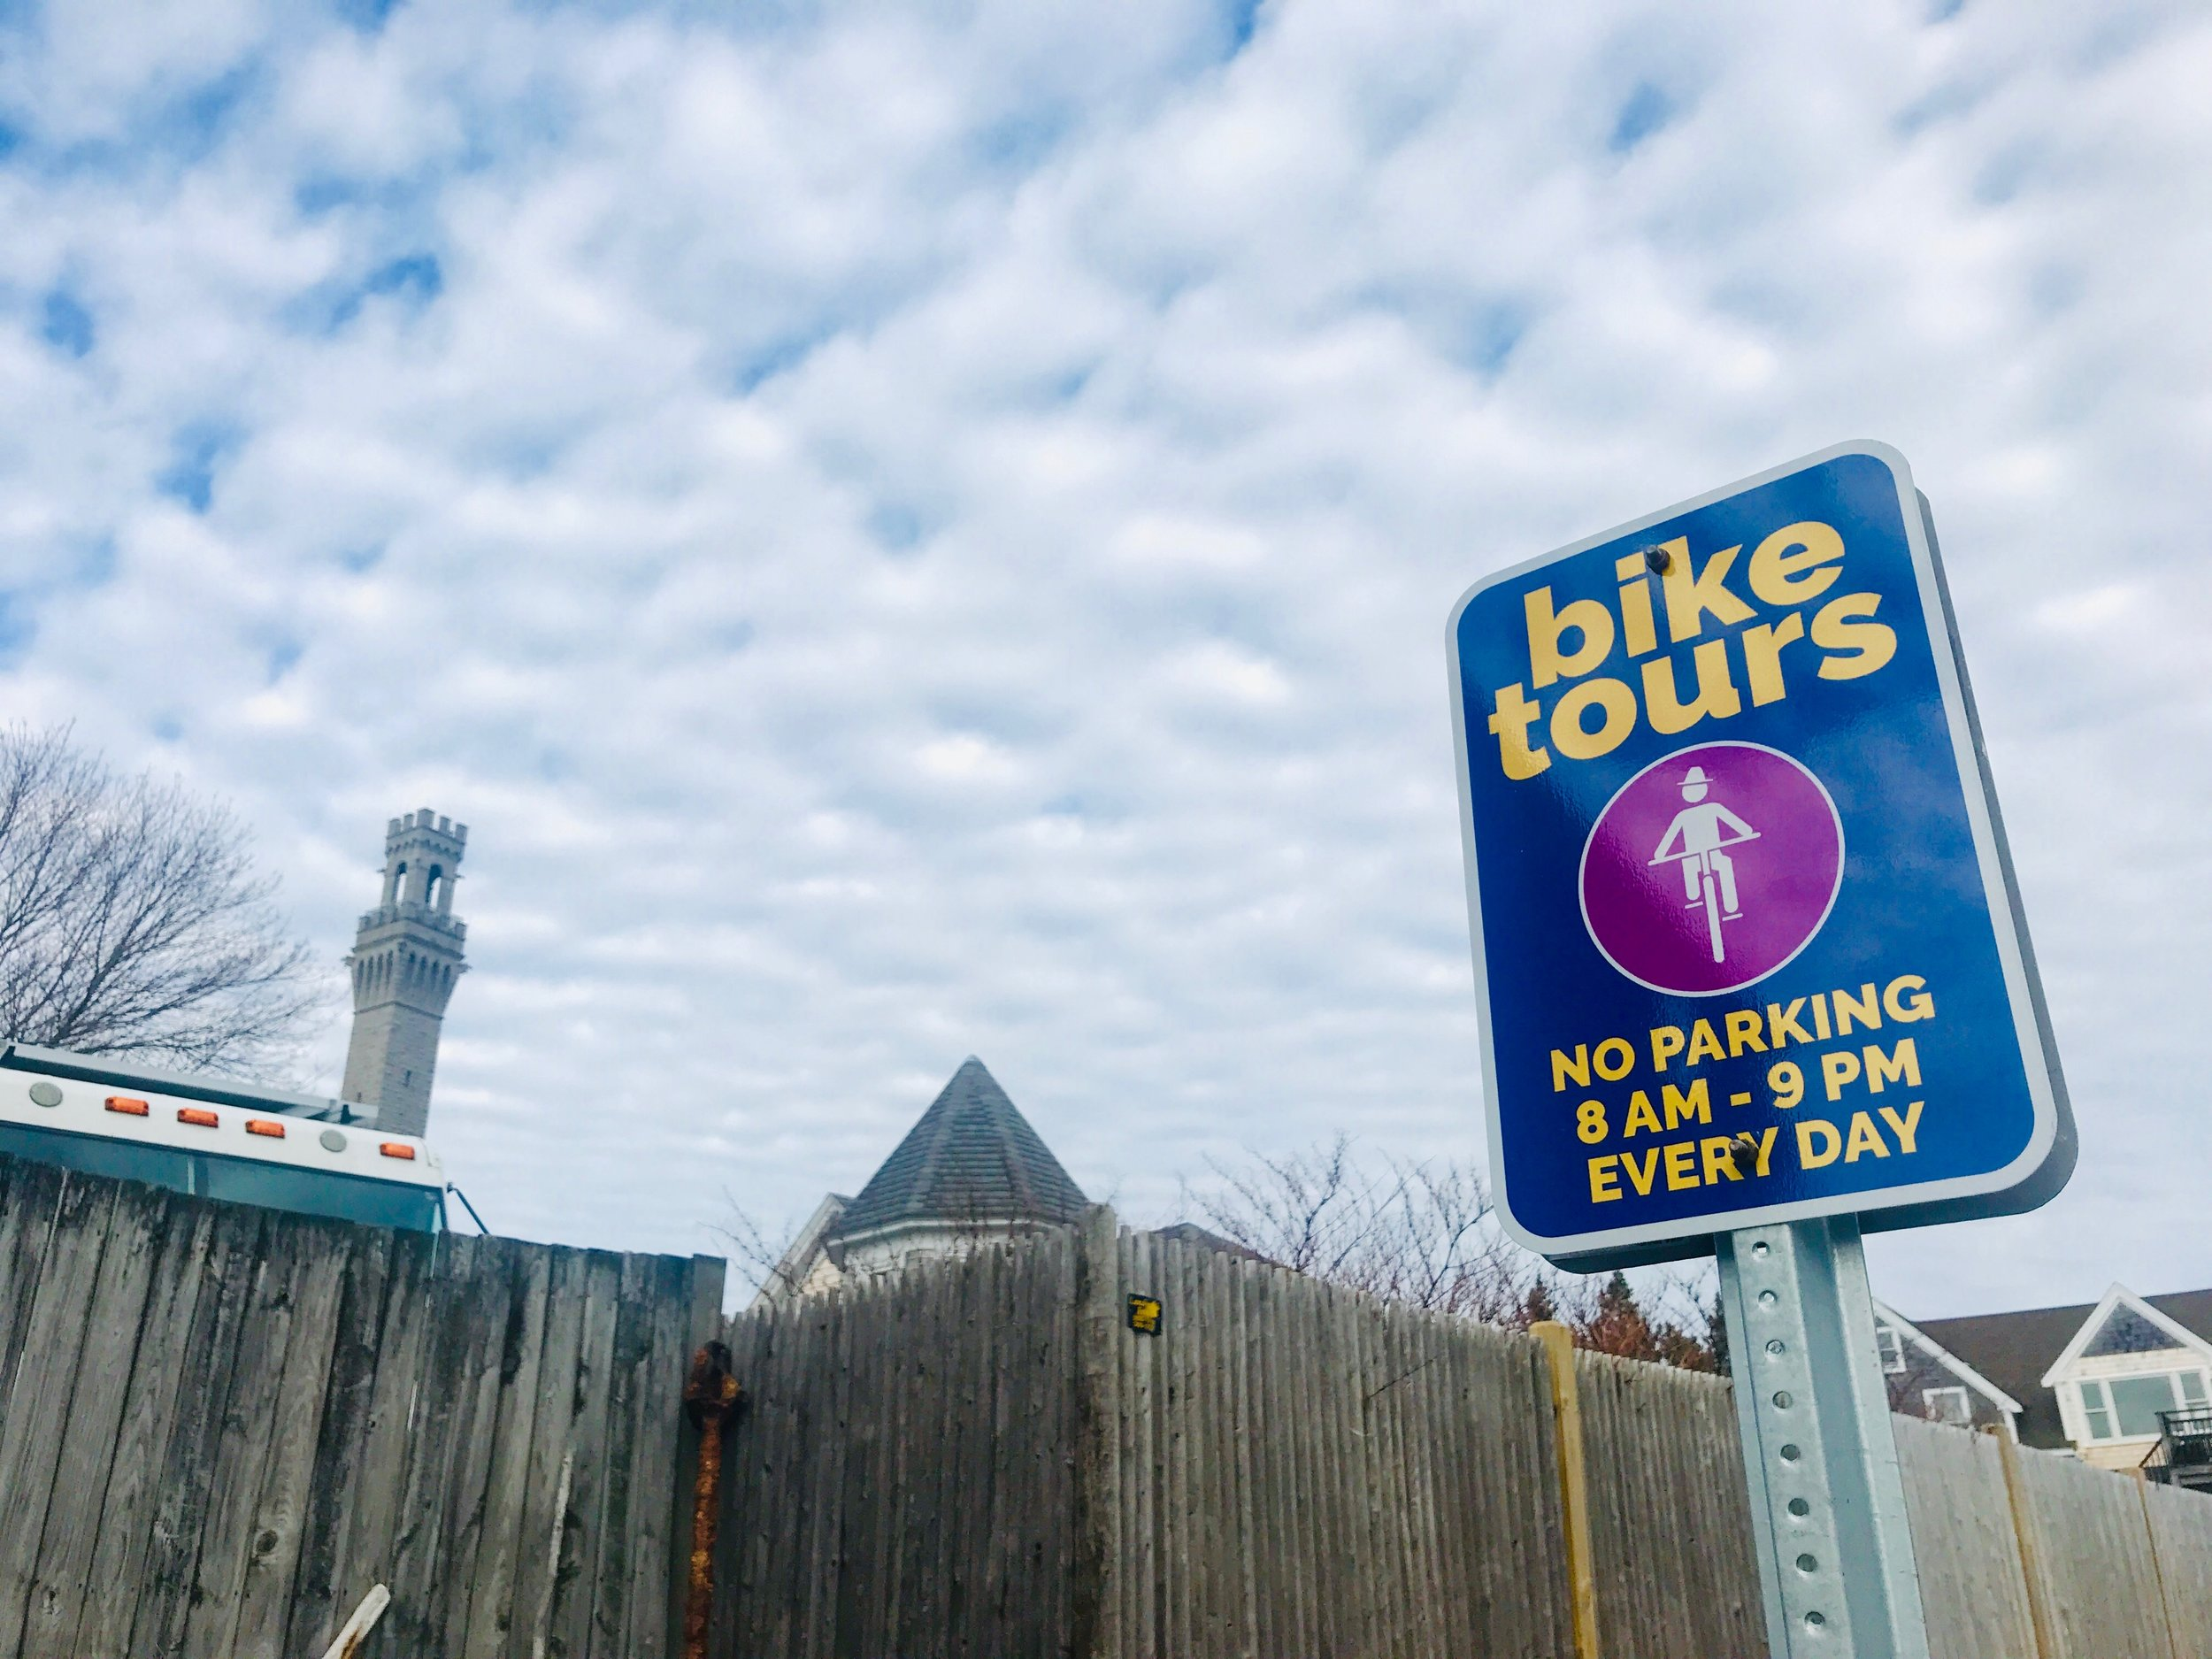 Look for the bike tours sign next to Art's on Standish Street.